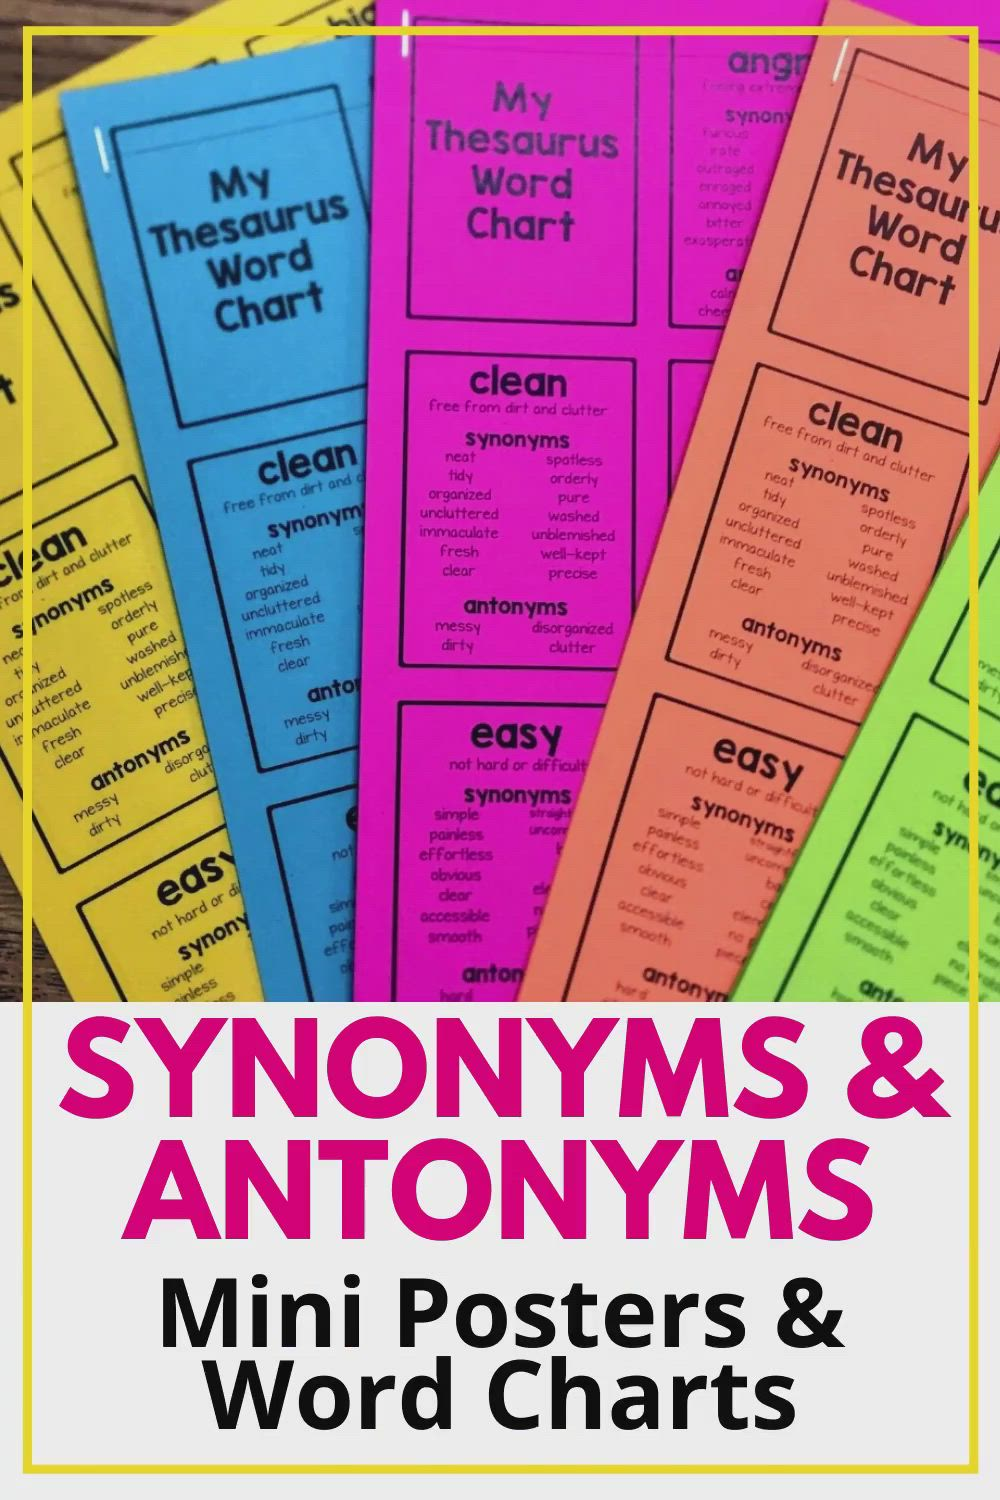 Synonyms And Antonyms Charts [Video] | Synonyms And Antonyms, Thesaurus  Words, Descriptive Words